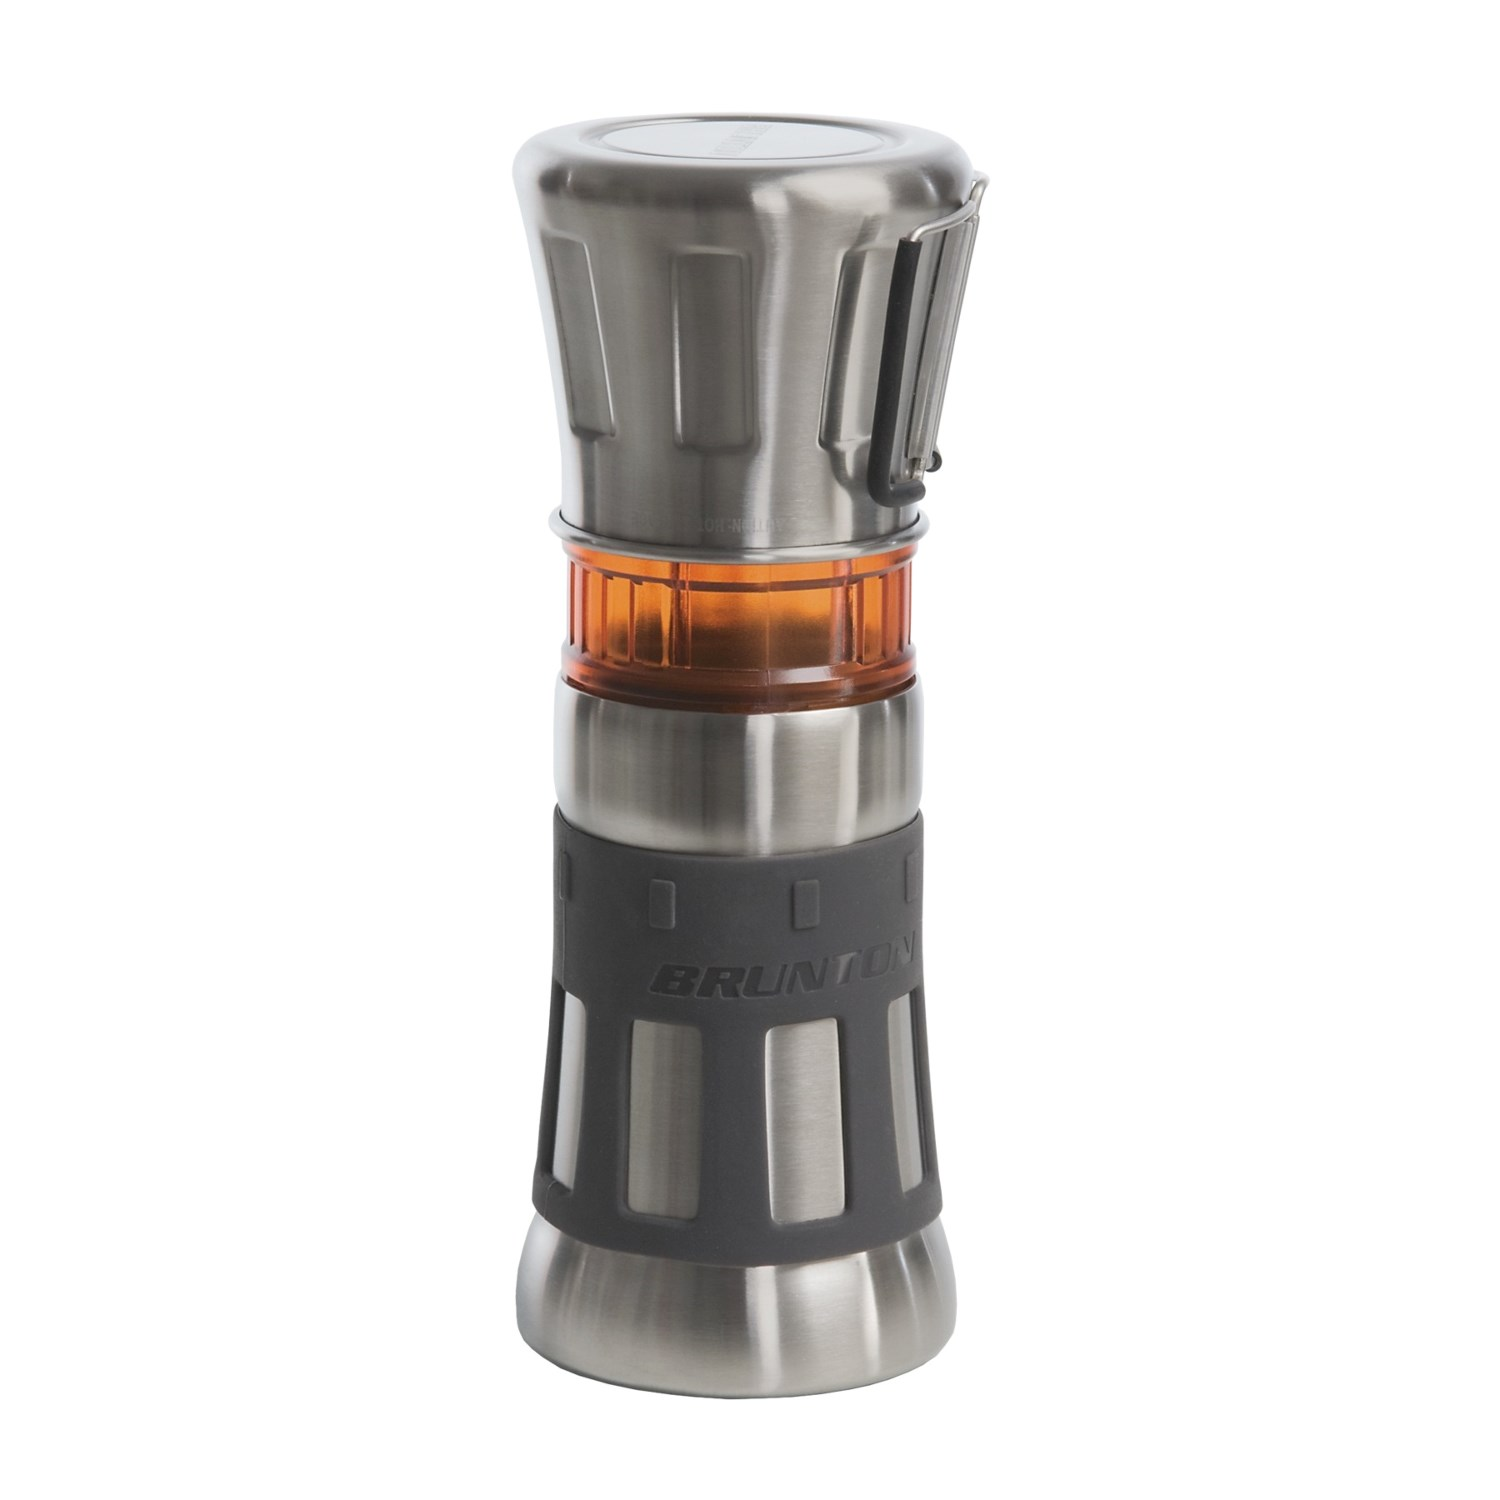 Brunton Flip N Drip Coffee Maker 3390x Save 50